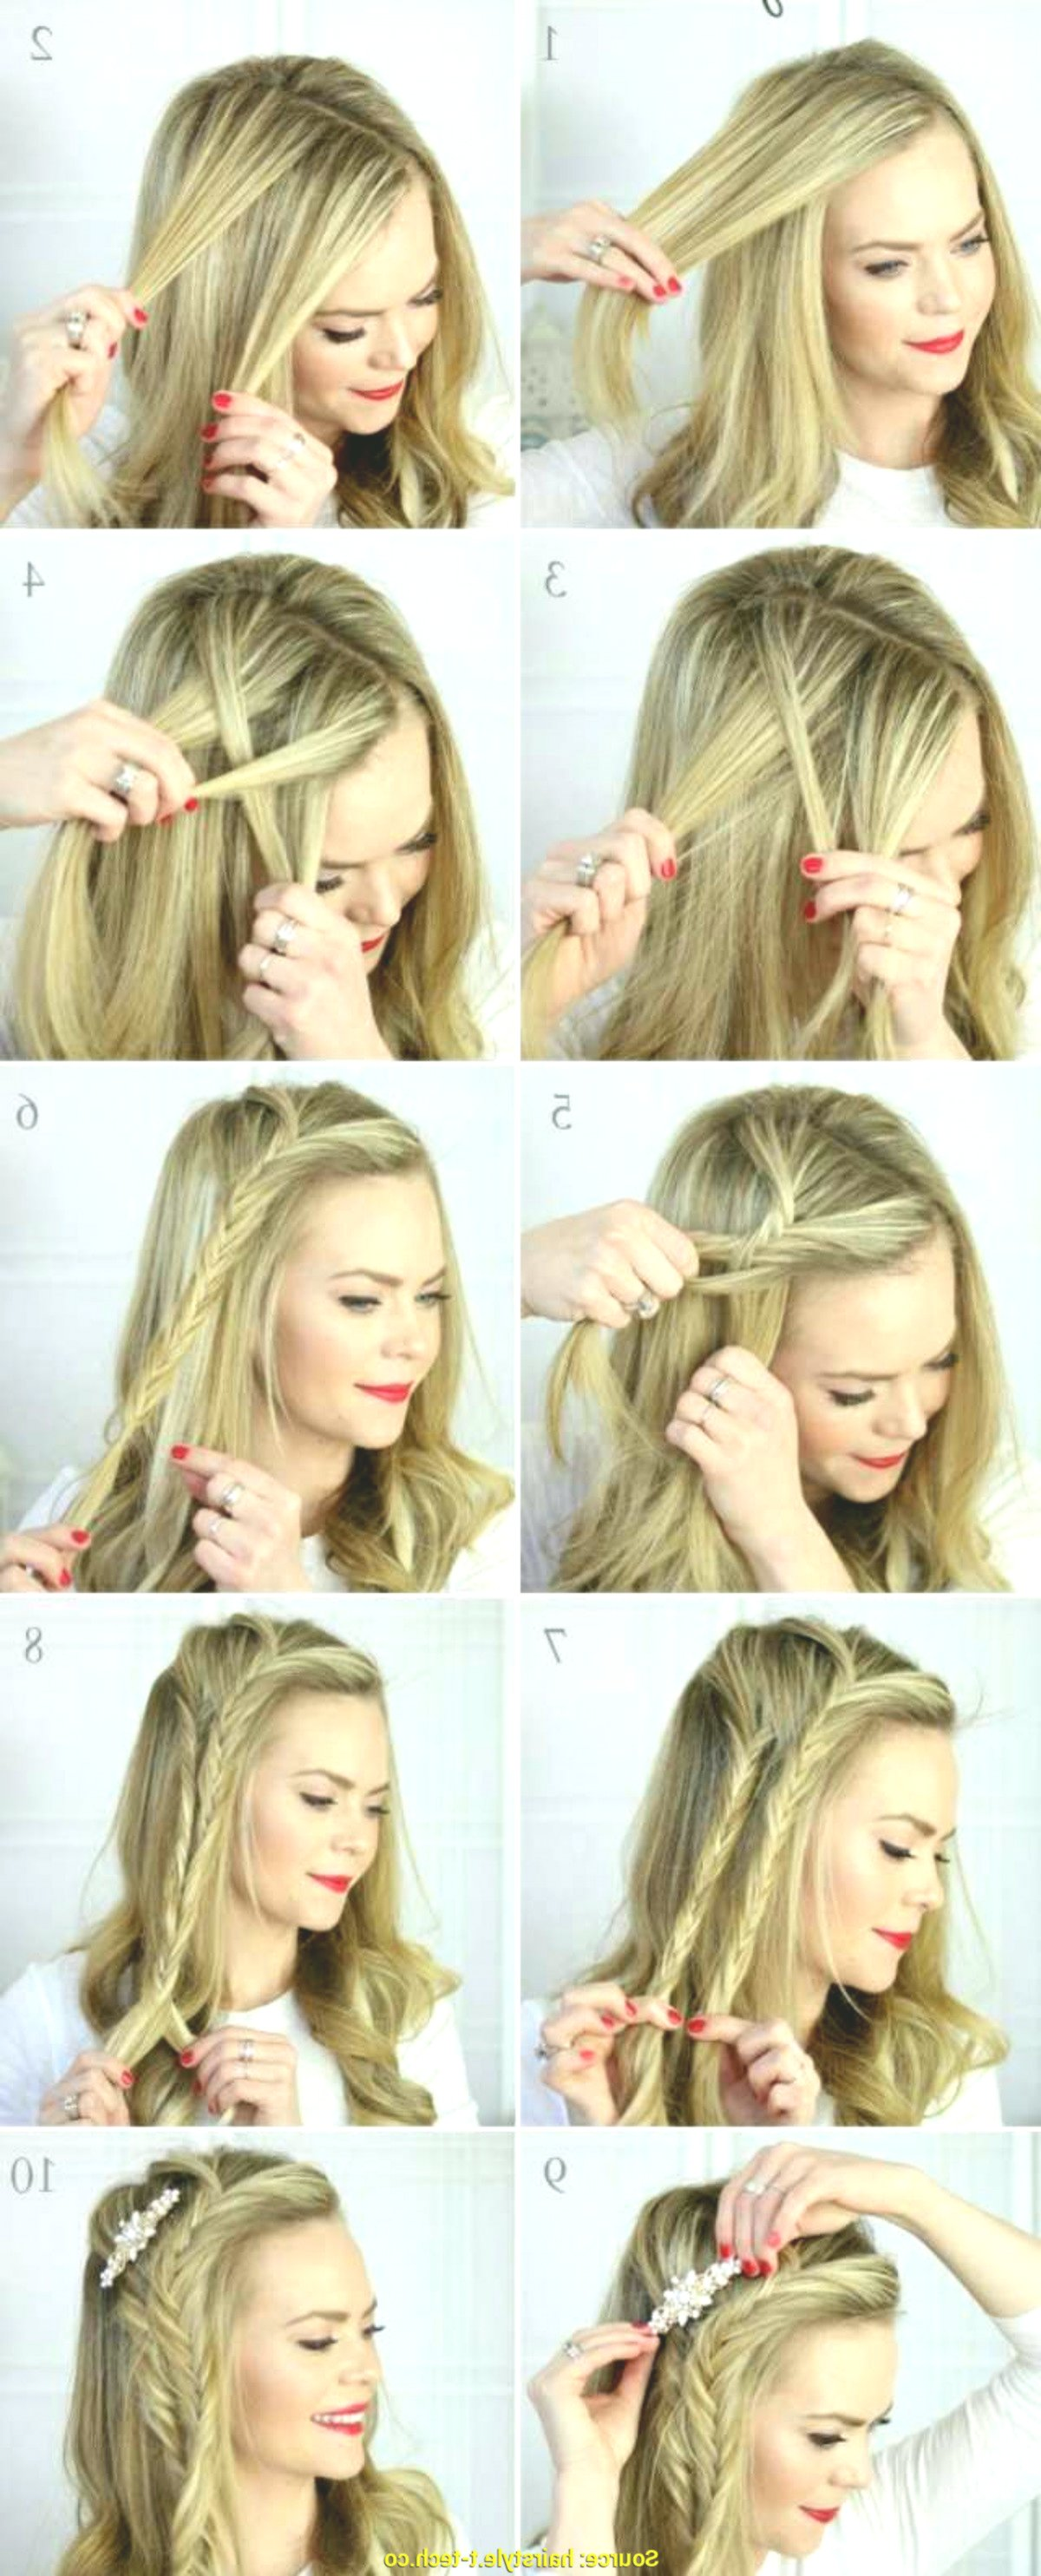 elegant hairstyling instructions plan-Awesome hairstyles instructions wall